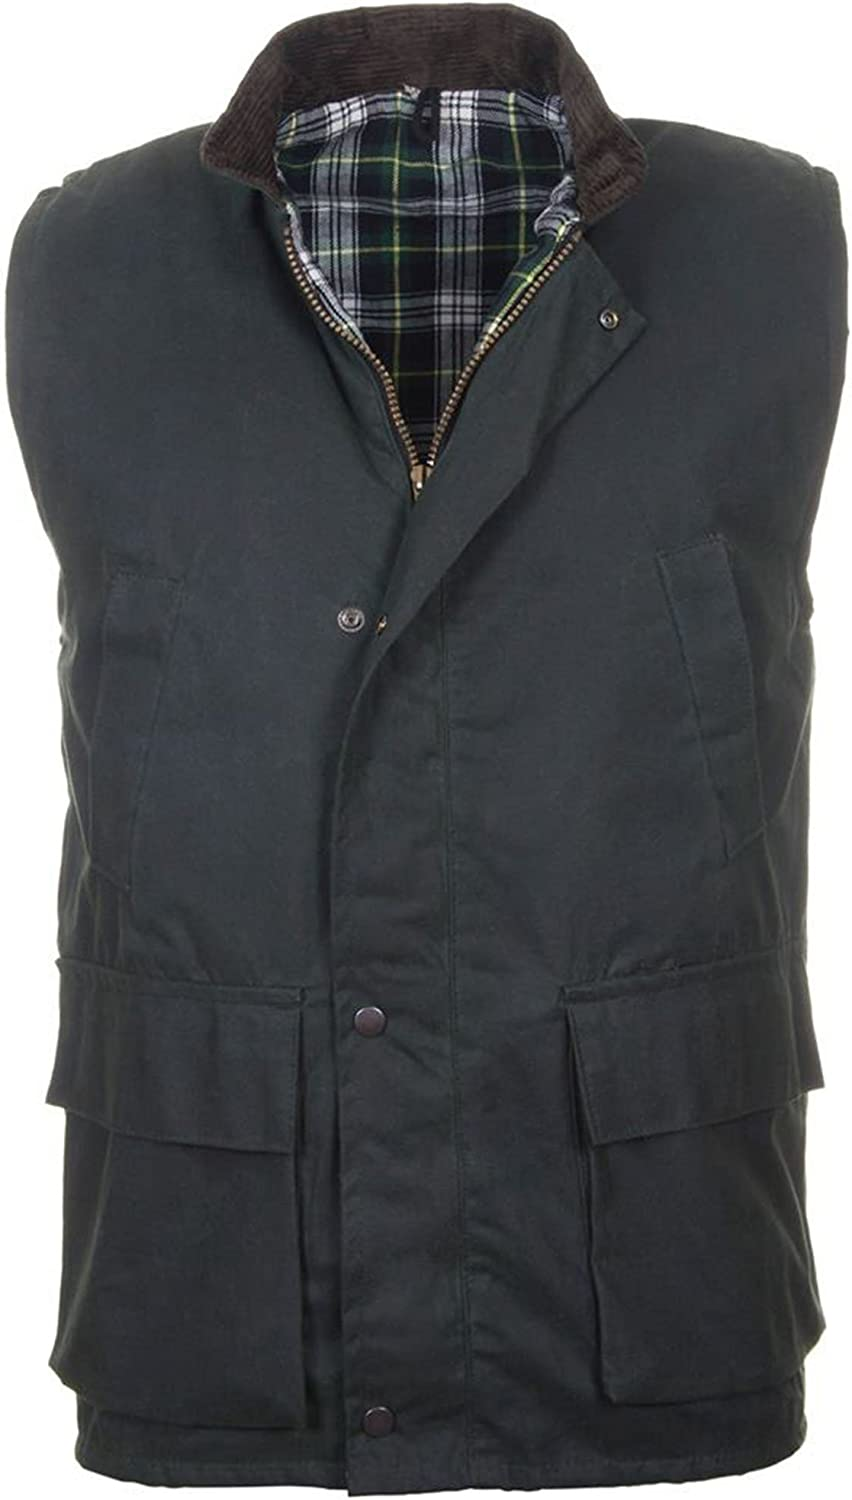 Country Wear - Chaleco - para Hombre